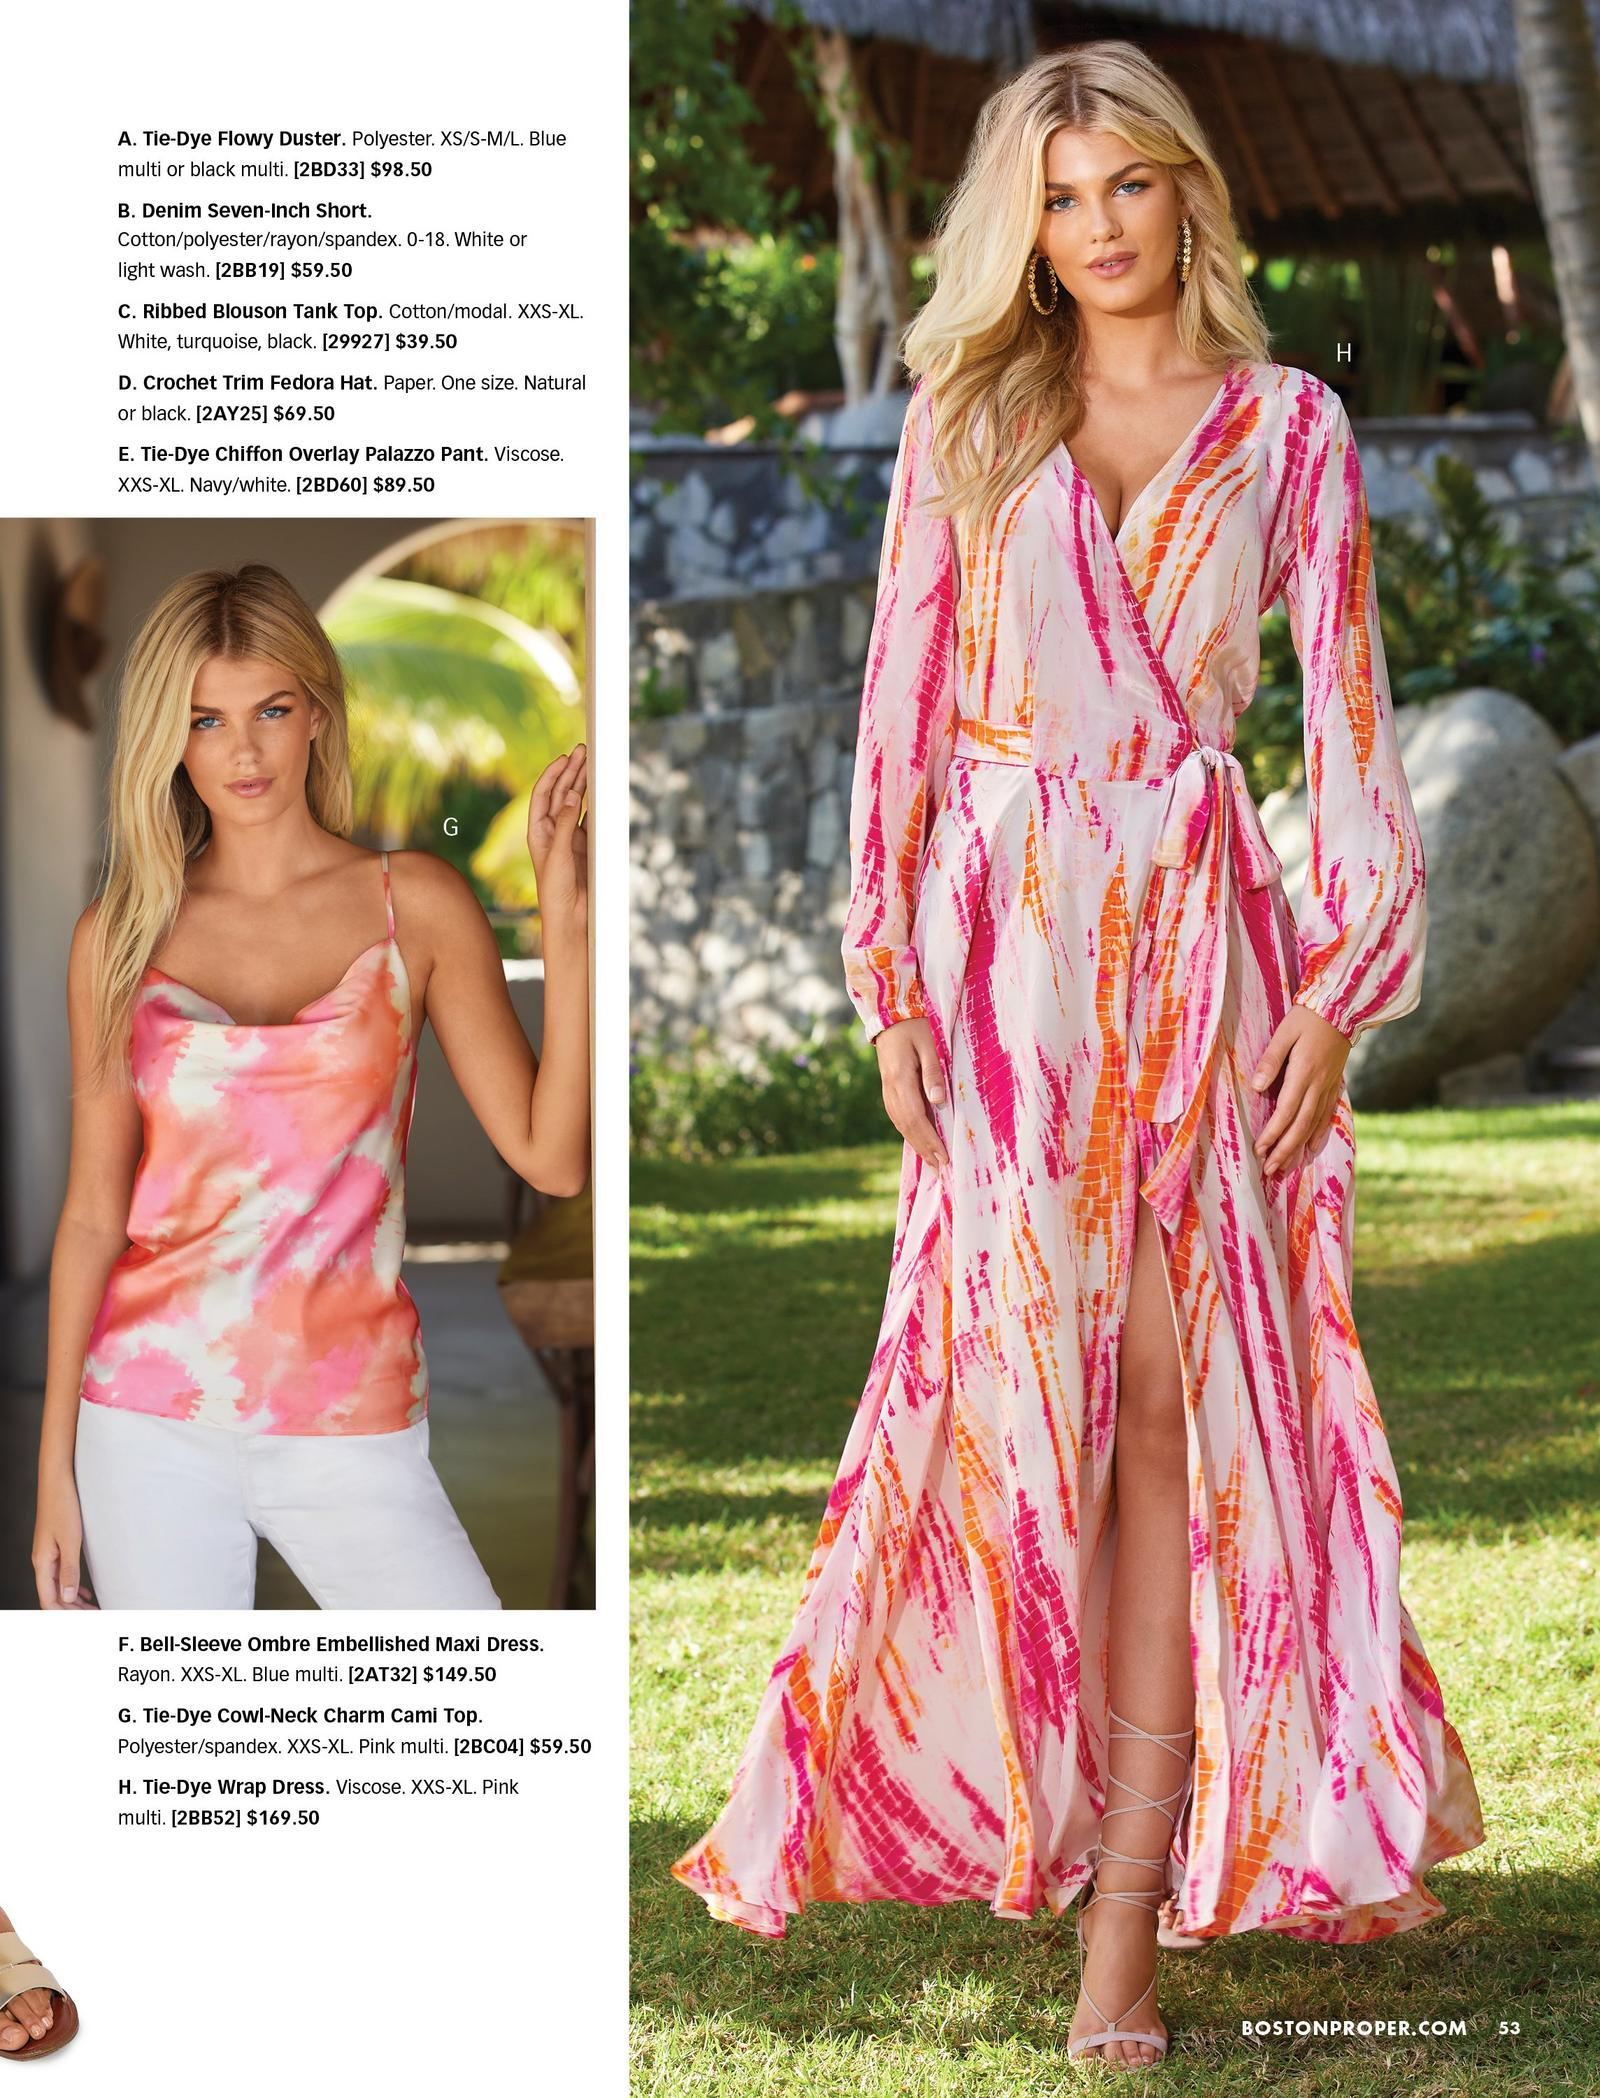 left model wearing a pink and orange tie-dye cowl neck tank top and white jeans. right model wearing a pink and orange tie-dye long-sleeve wrap maxi dress and gold lace-up sandals.